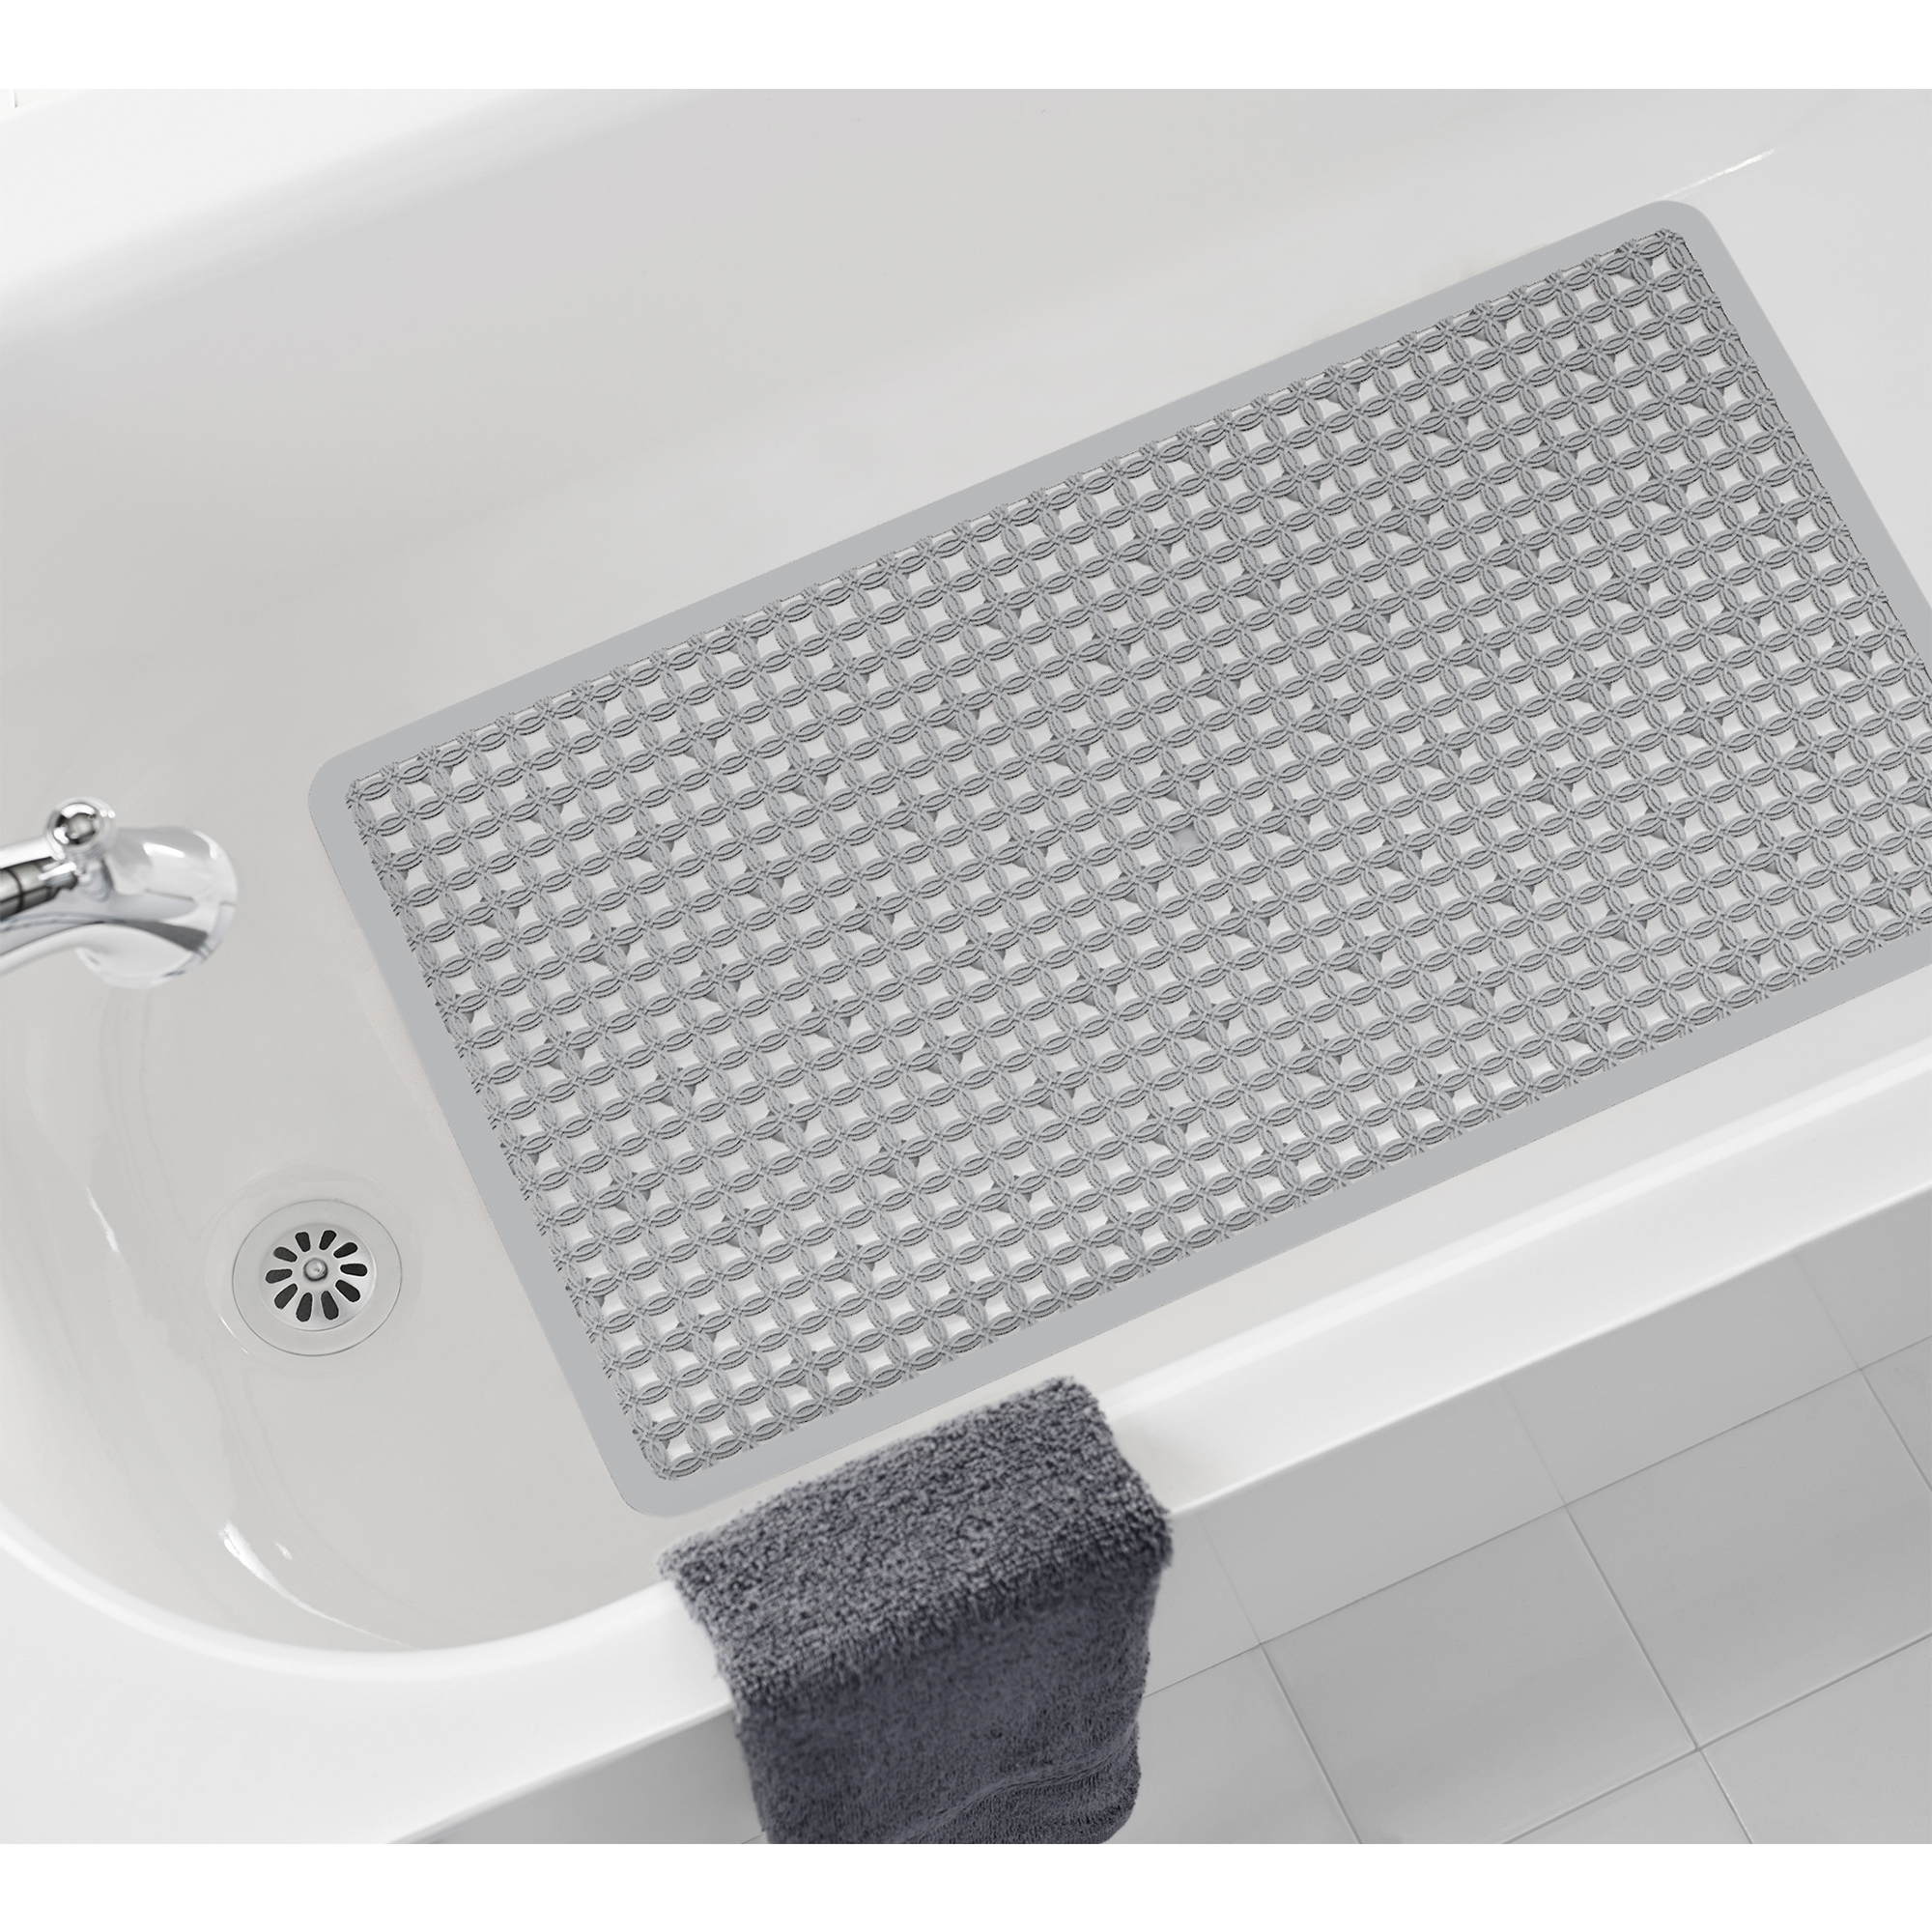 Mainstays 15 in x 27 in Slip-Resistant Ring Textured Bath Mat, Gray